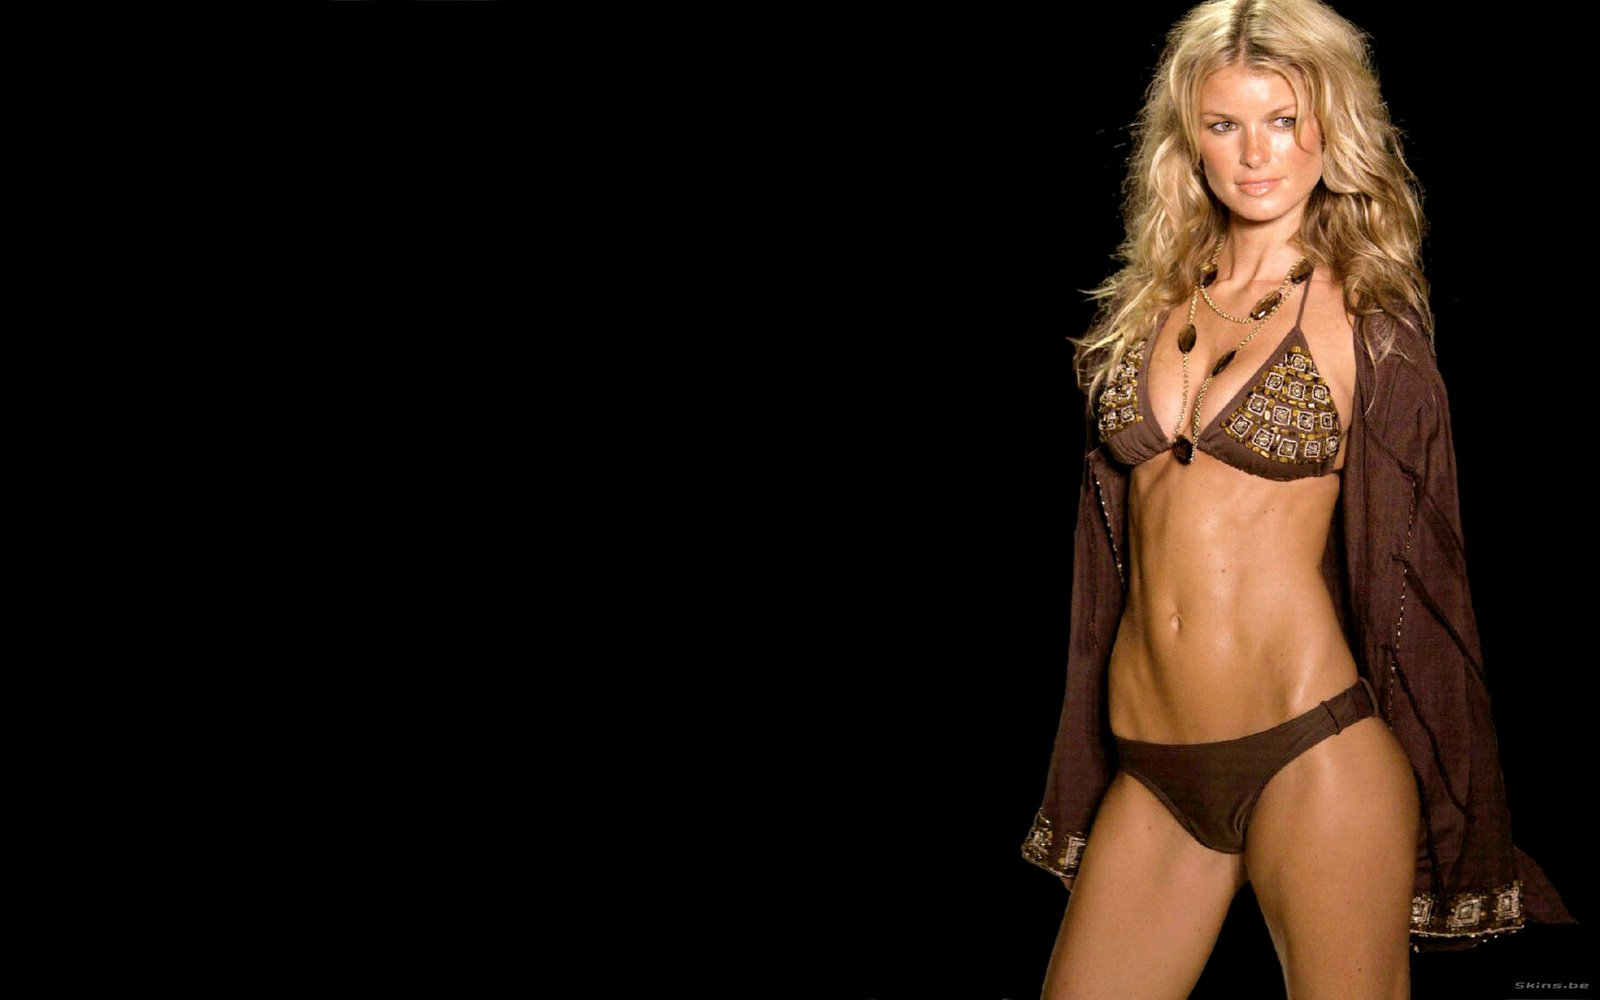 Marisa Miller Wallpapers